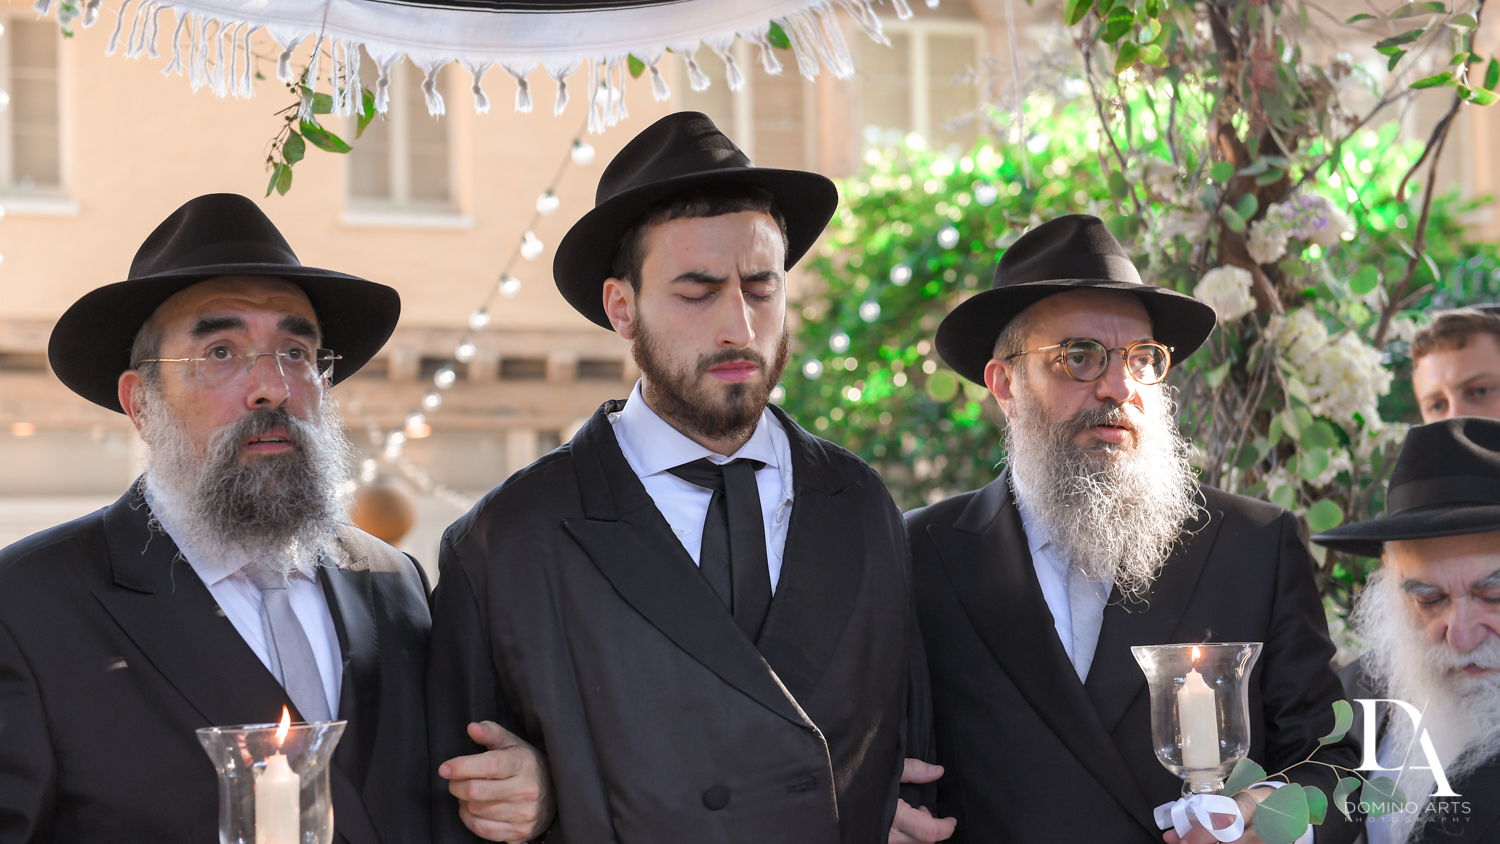 praying groom at Hasidic Jewish Wedding at The Addison in Boca Raton by Domino Arts Photography